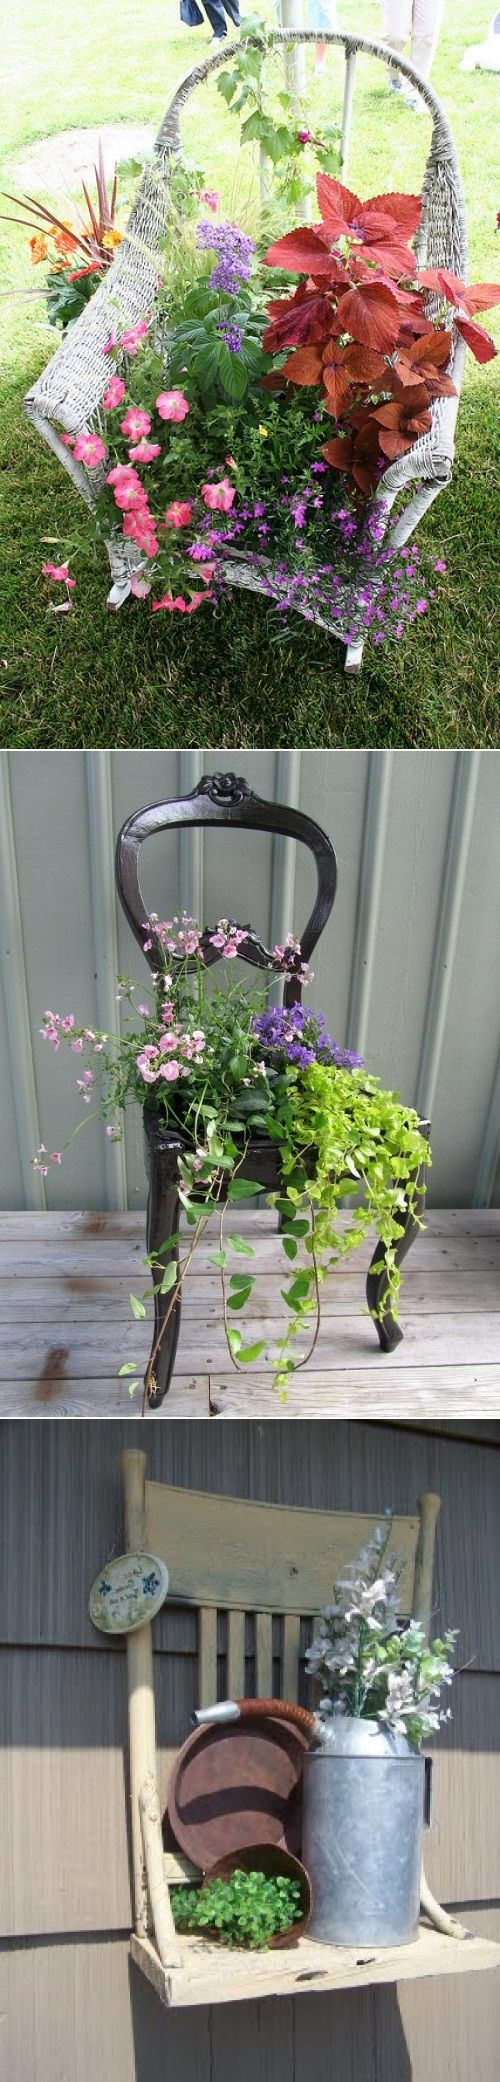 DIY Transform Old Chairs Into Beautiful Mini Gardens